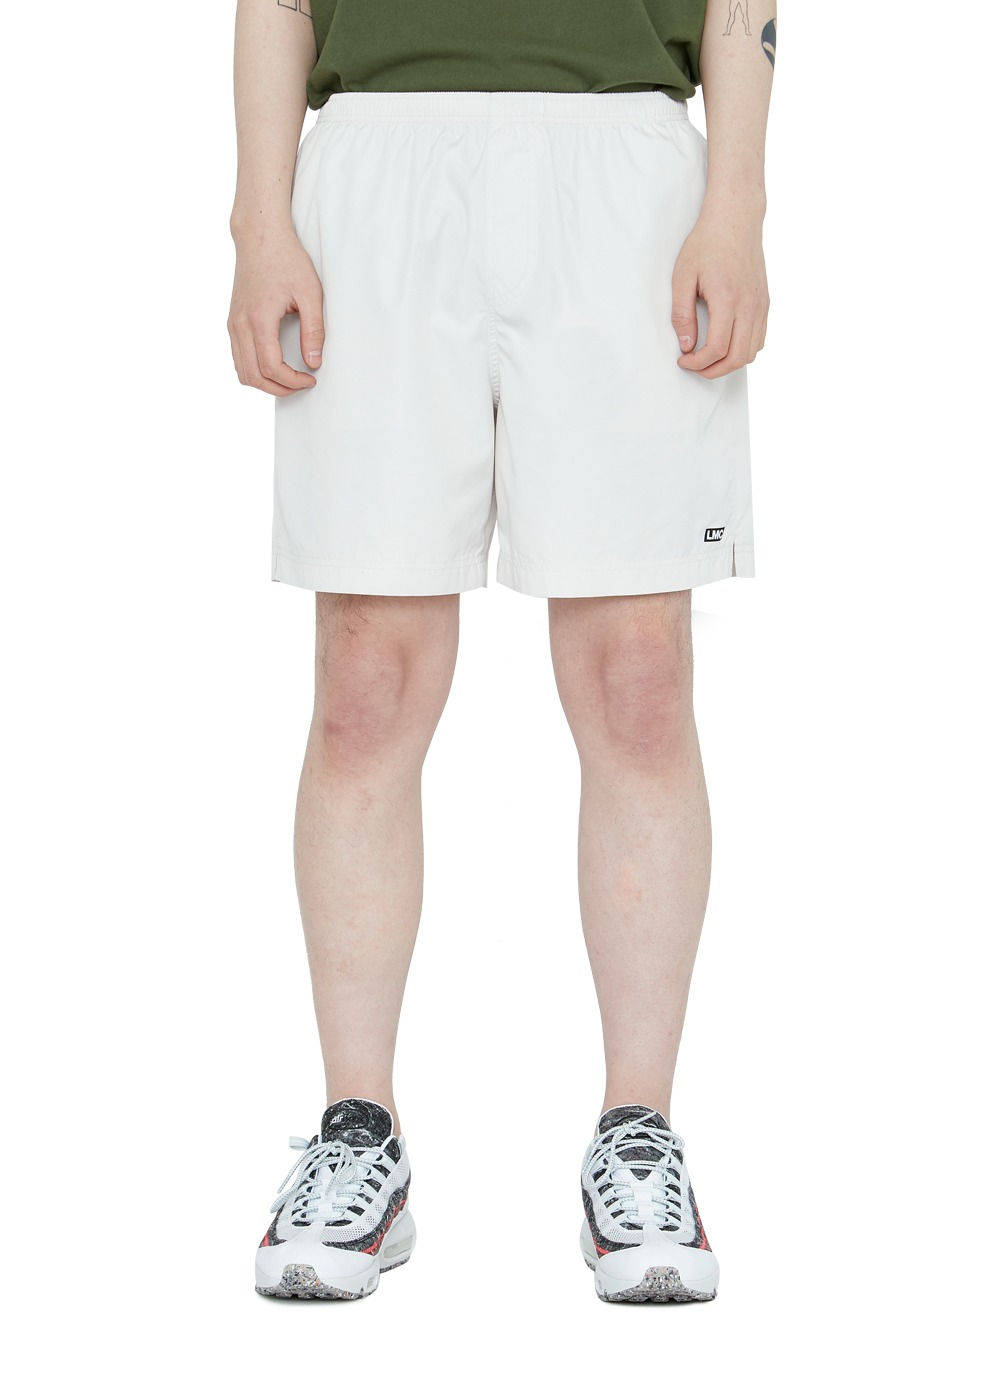 LMC IDEAL TRACK SHORTS cream